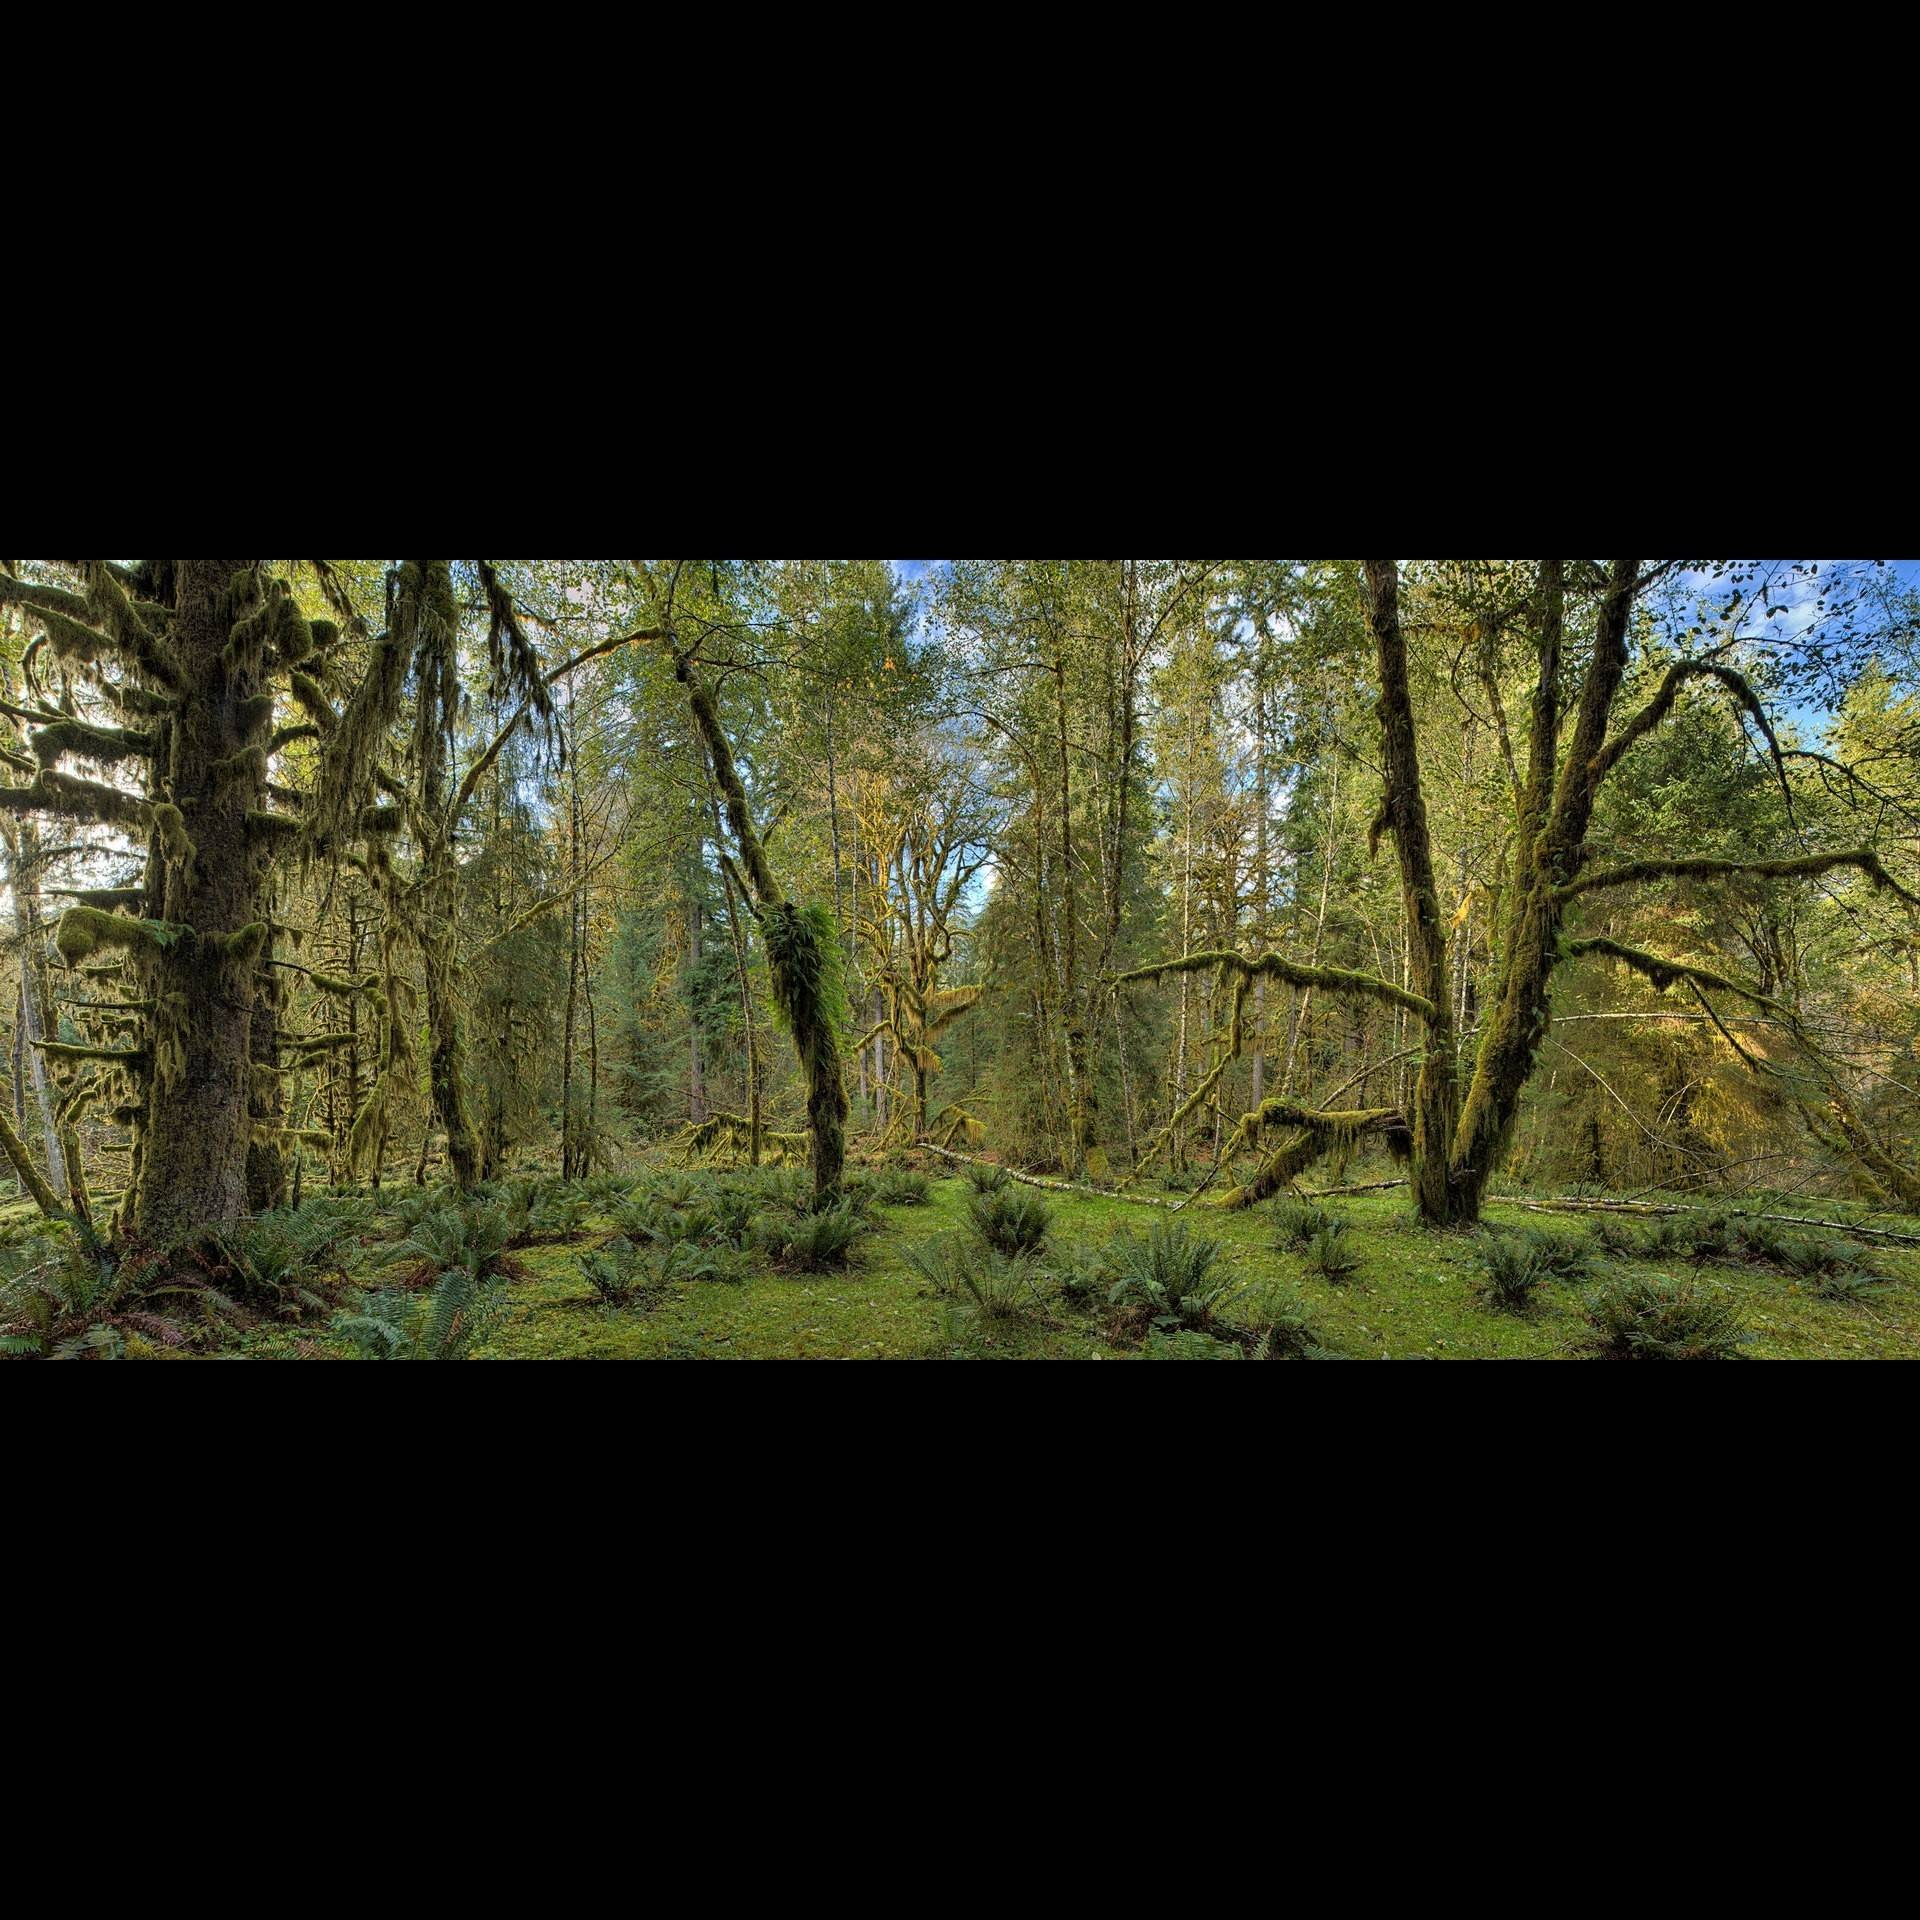 """Olympic Rain Forest"" is a work by St. Charles fine art photographer John Rydin, whose work will be on display at the St. Charles Fine Art Show."